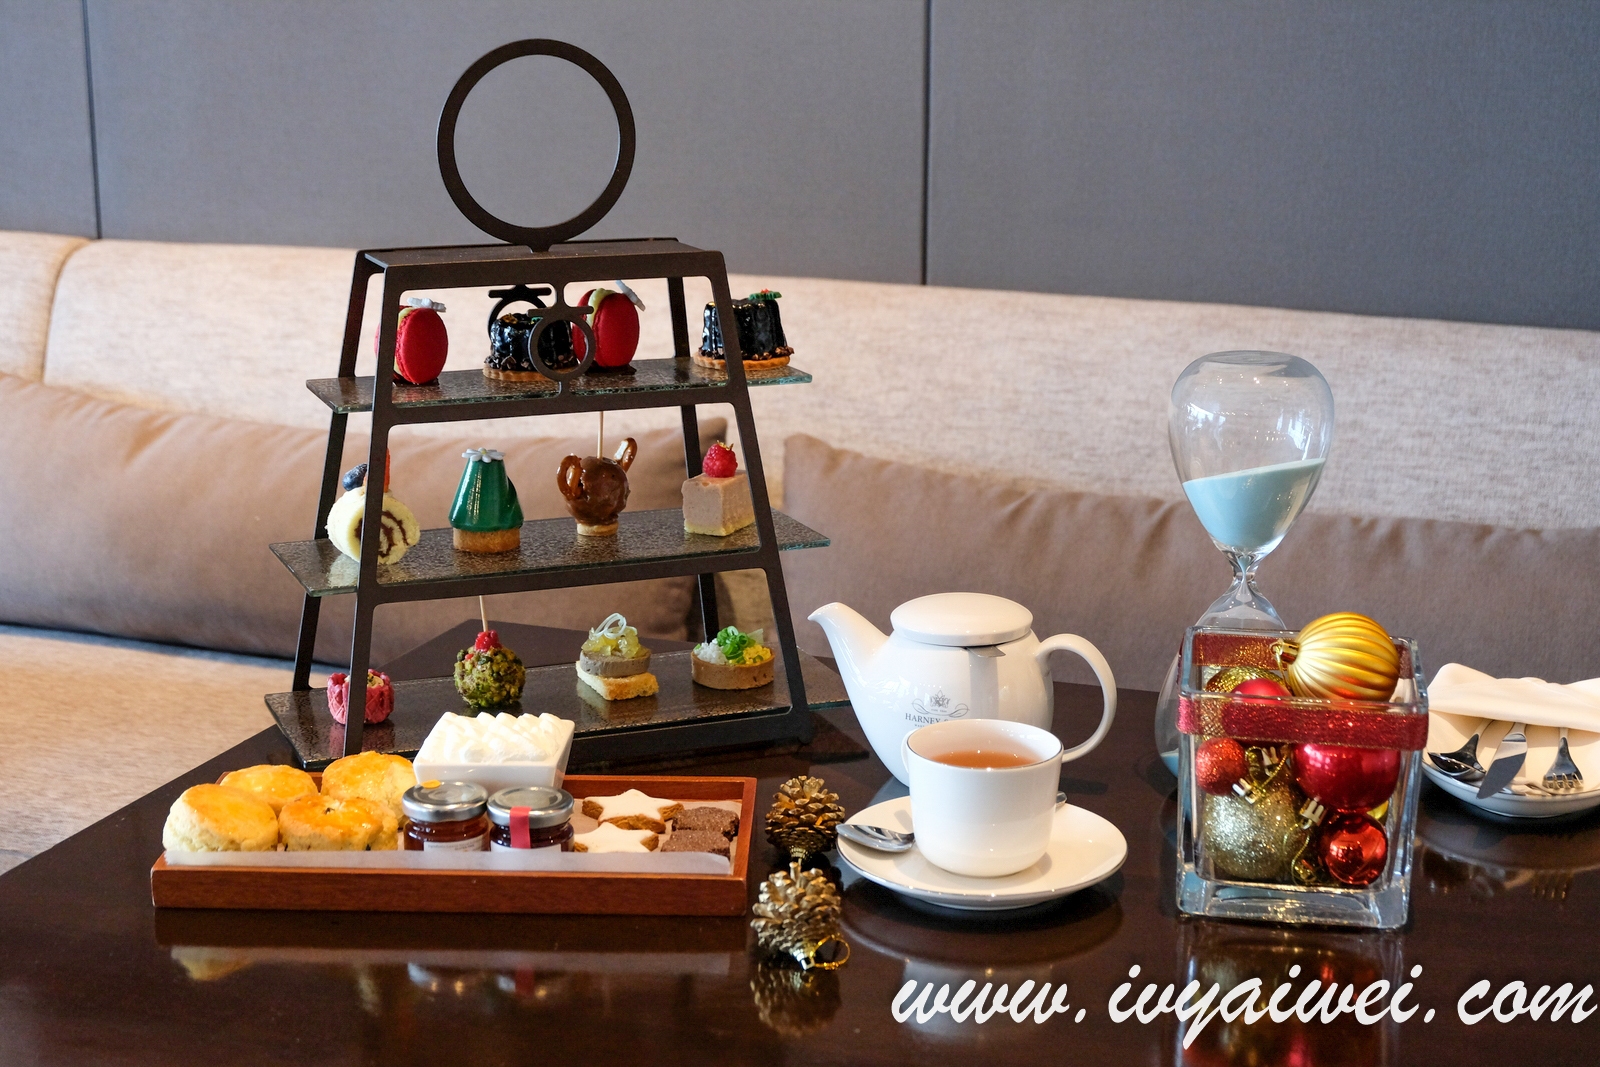 Festive Afternoon Tea: 2 Pax at RM 99 nett @ New World Petaling Jaya Hotel